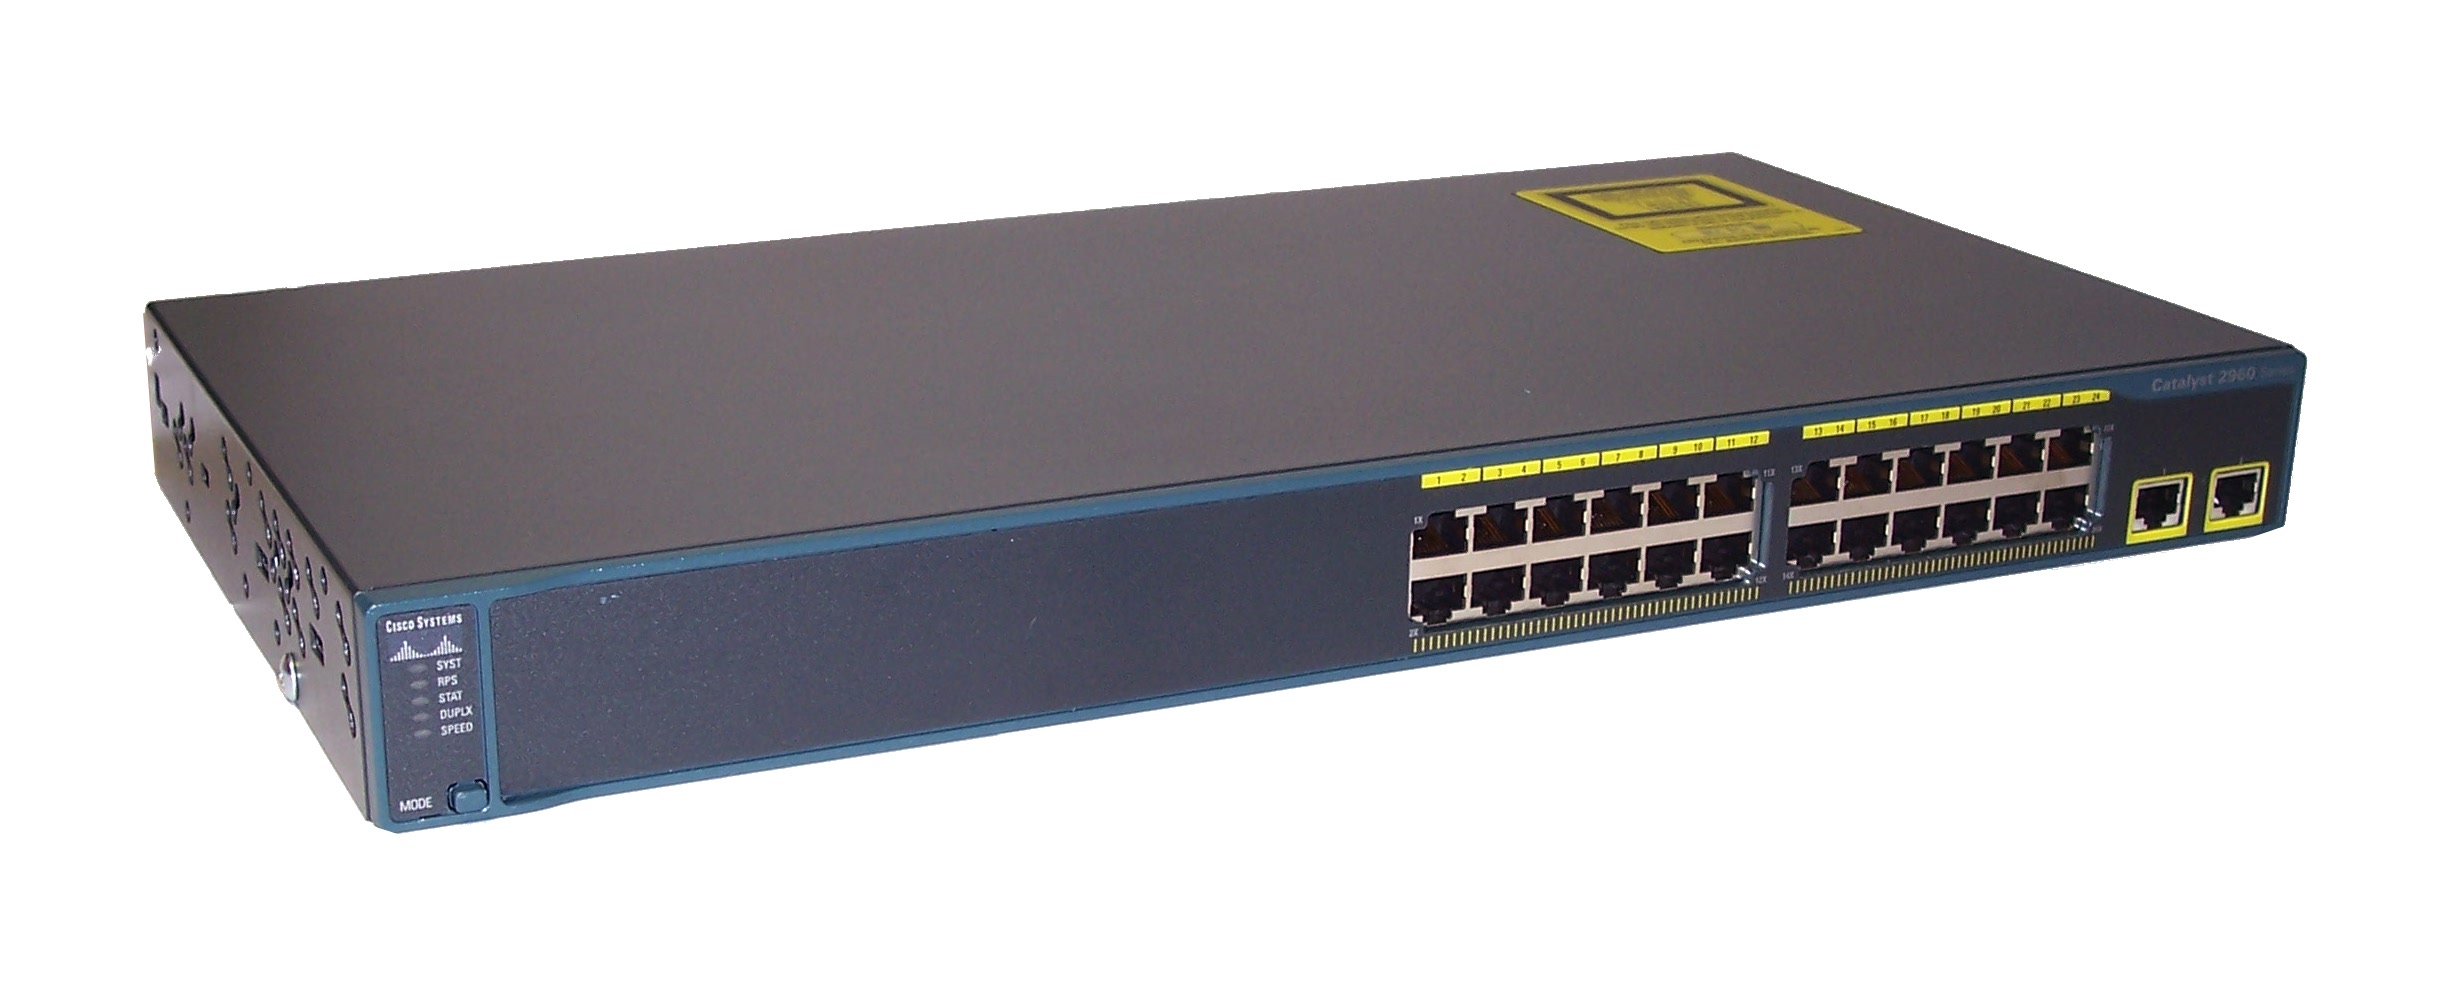 Cisco WS-C2960-24TT-L V02 Catalyst 2960 Version: 12.2(25)SEE2 24 Ethernet Switch Enlarged Preview